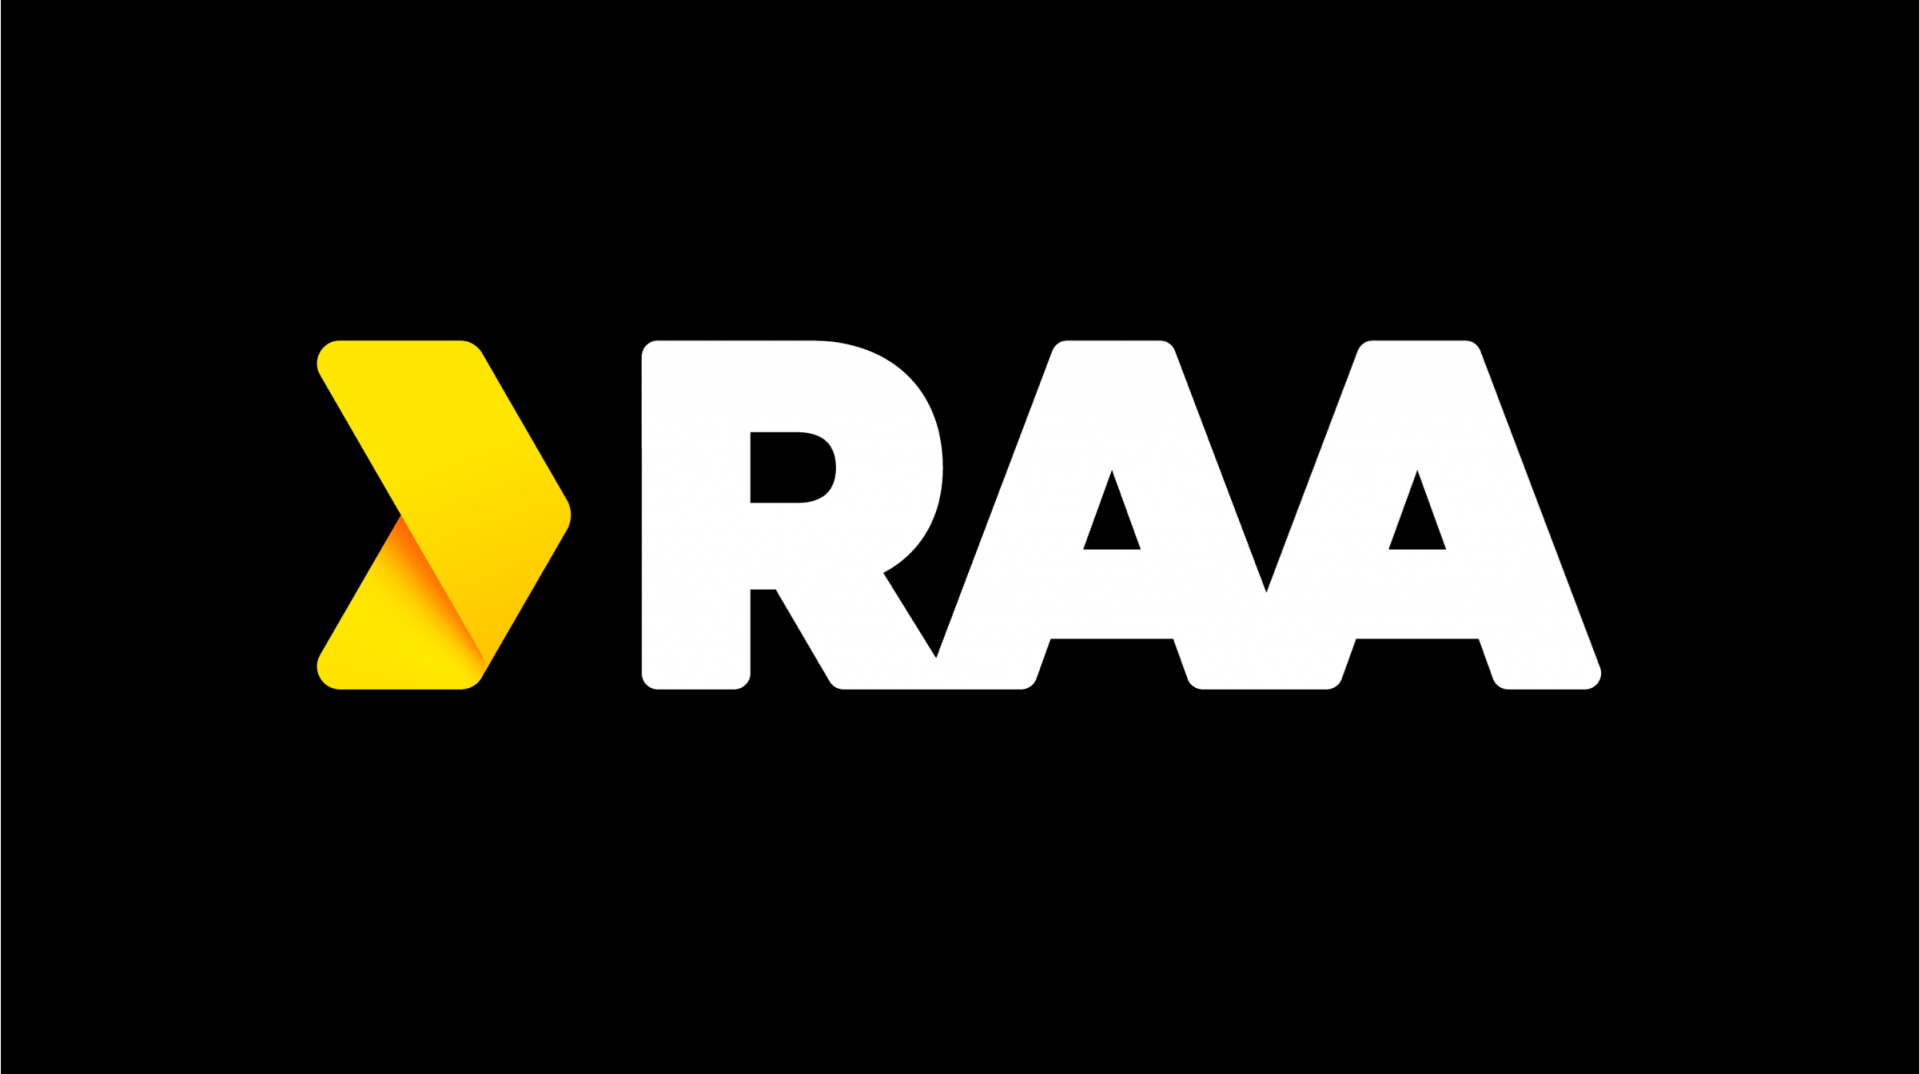 RAA's logo in yellow and white over a black background